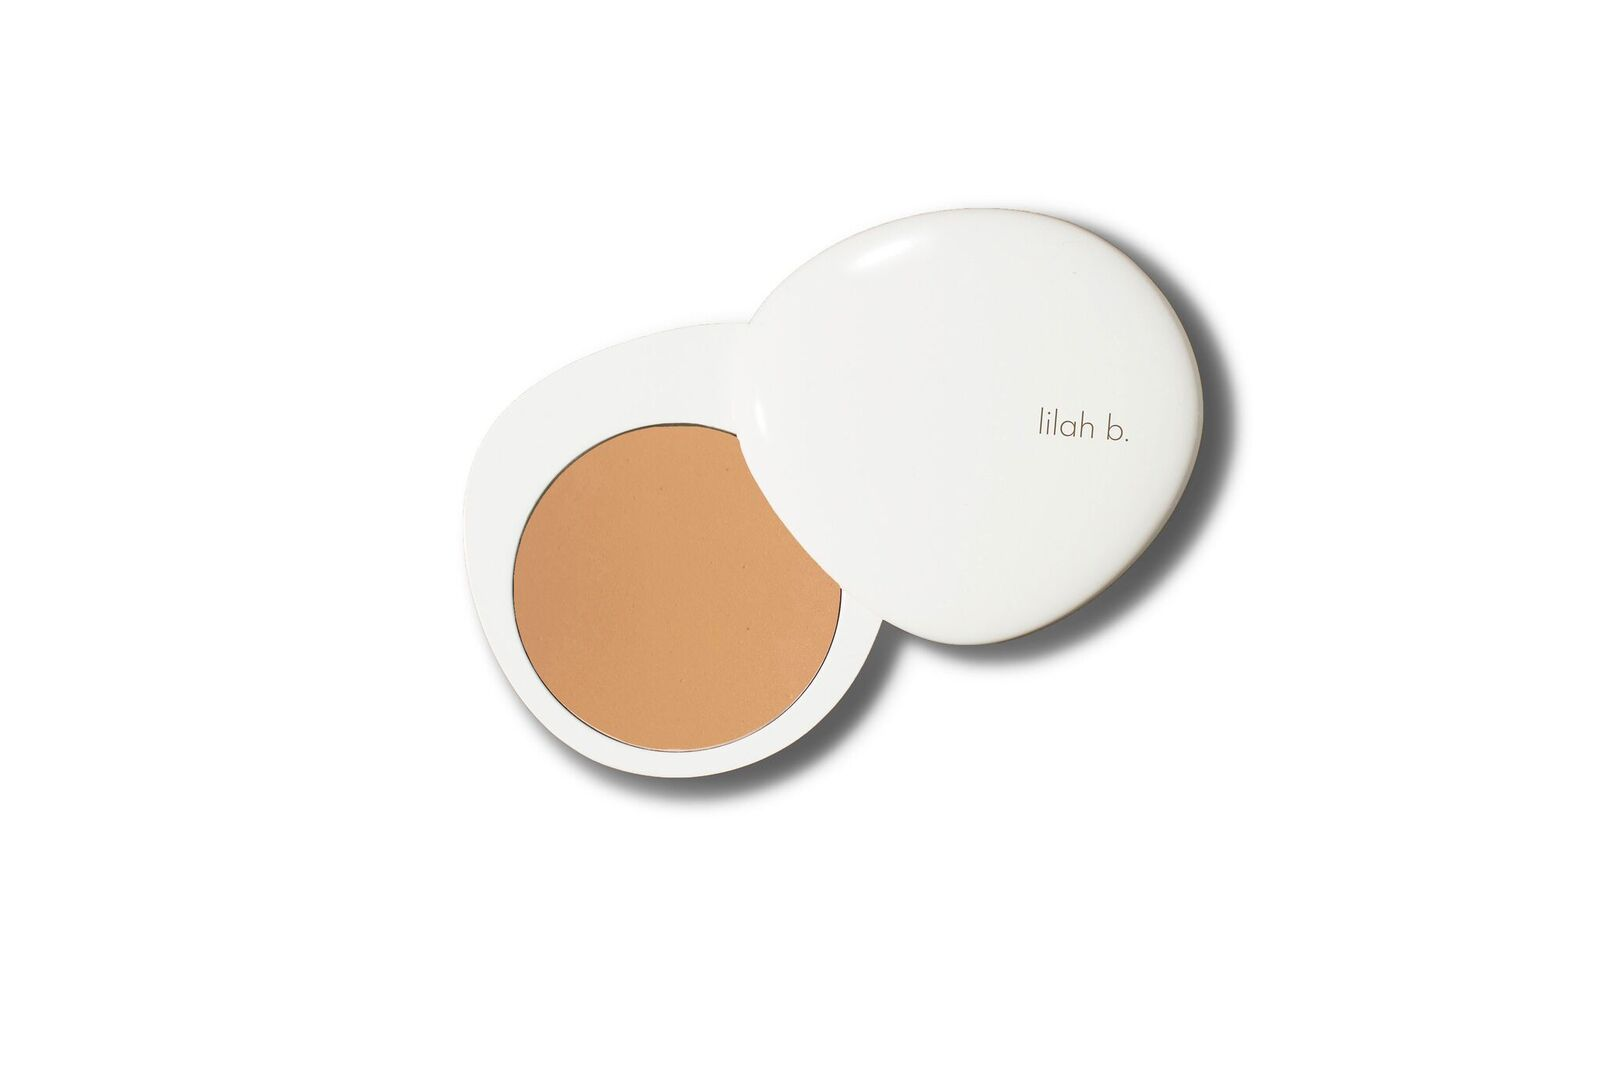 lilah b. Marvelous Matte Crème Foundation: b. natural Cosmetics - Face lilah b.